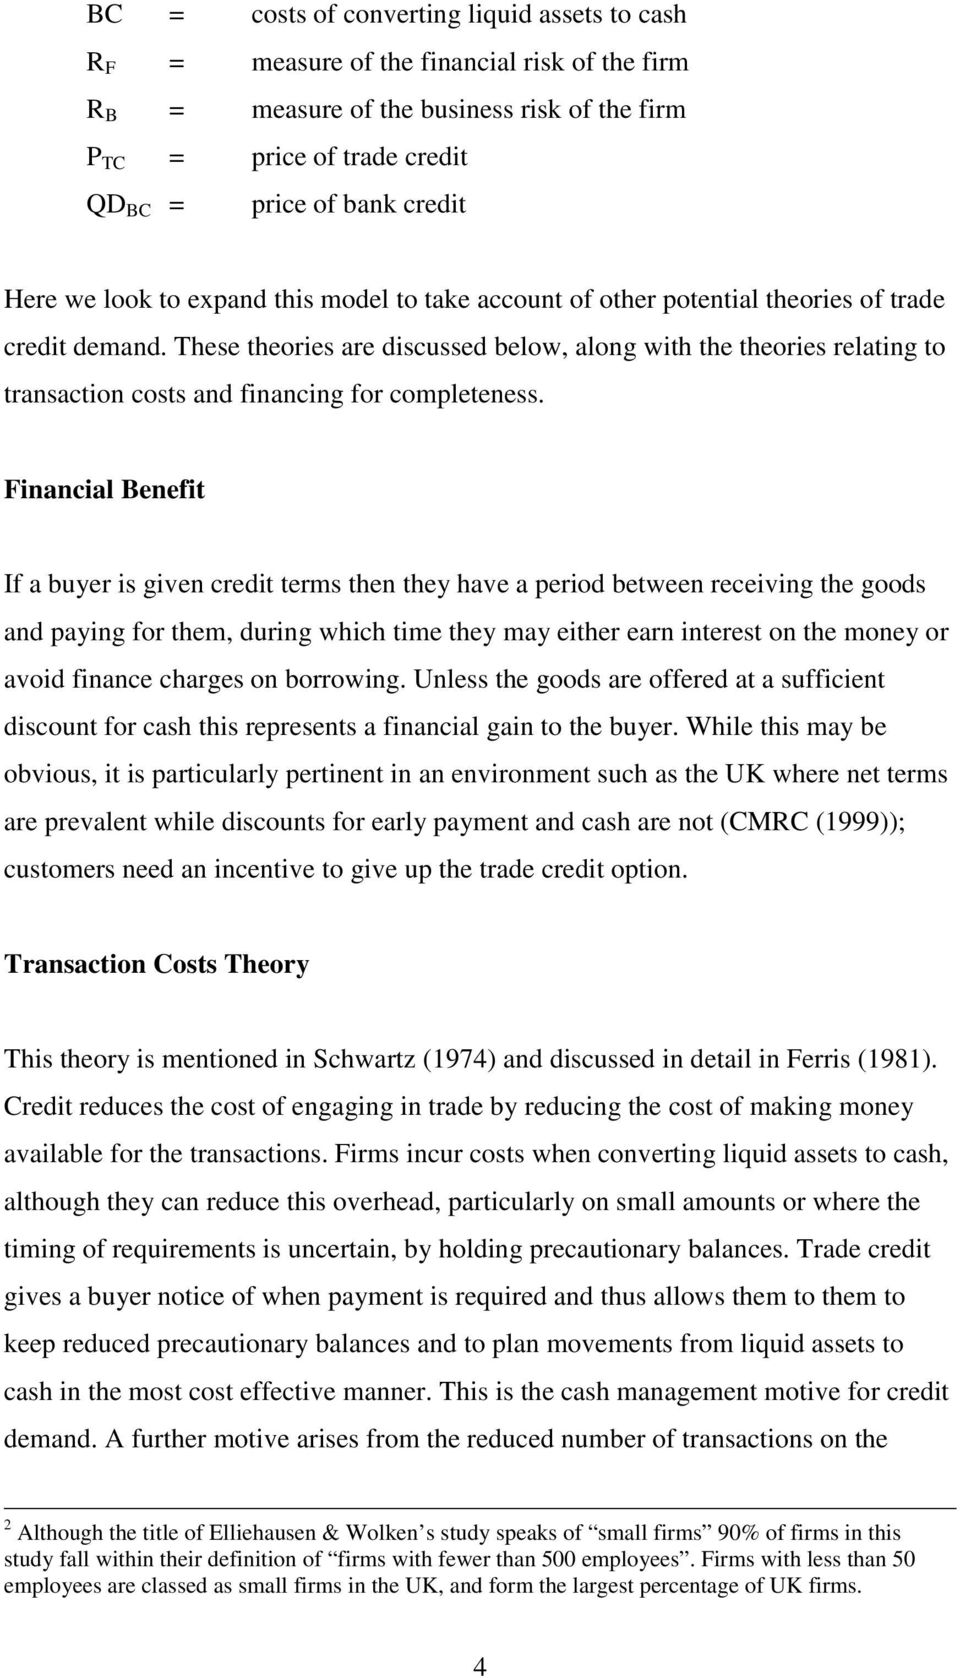 These theories are discussed below, along with the theories relating to transaction costs and financing for completeness.